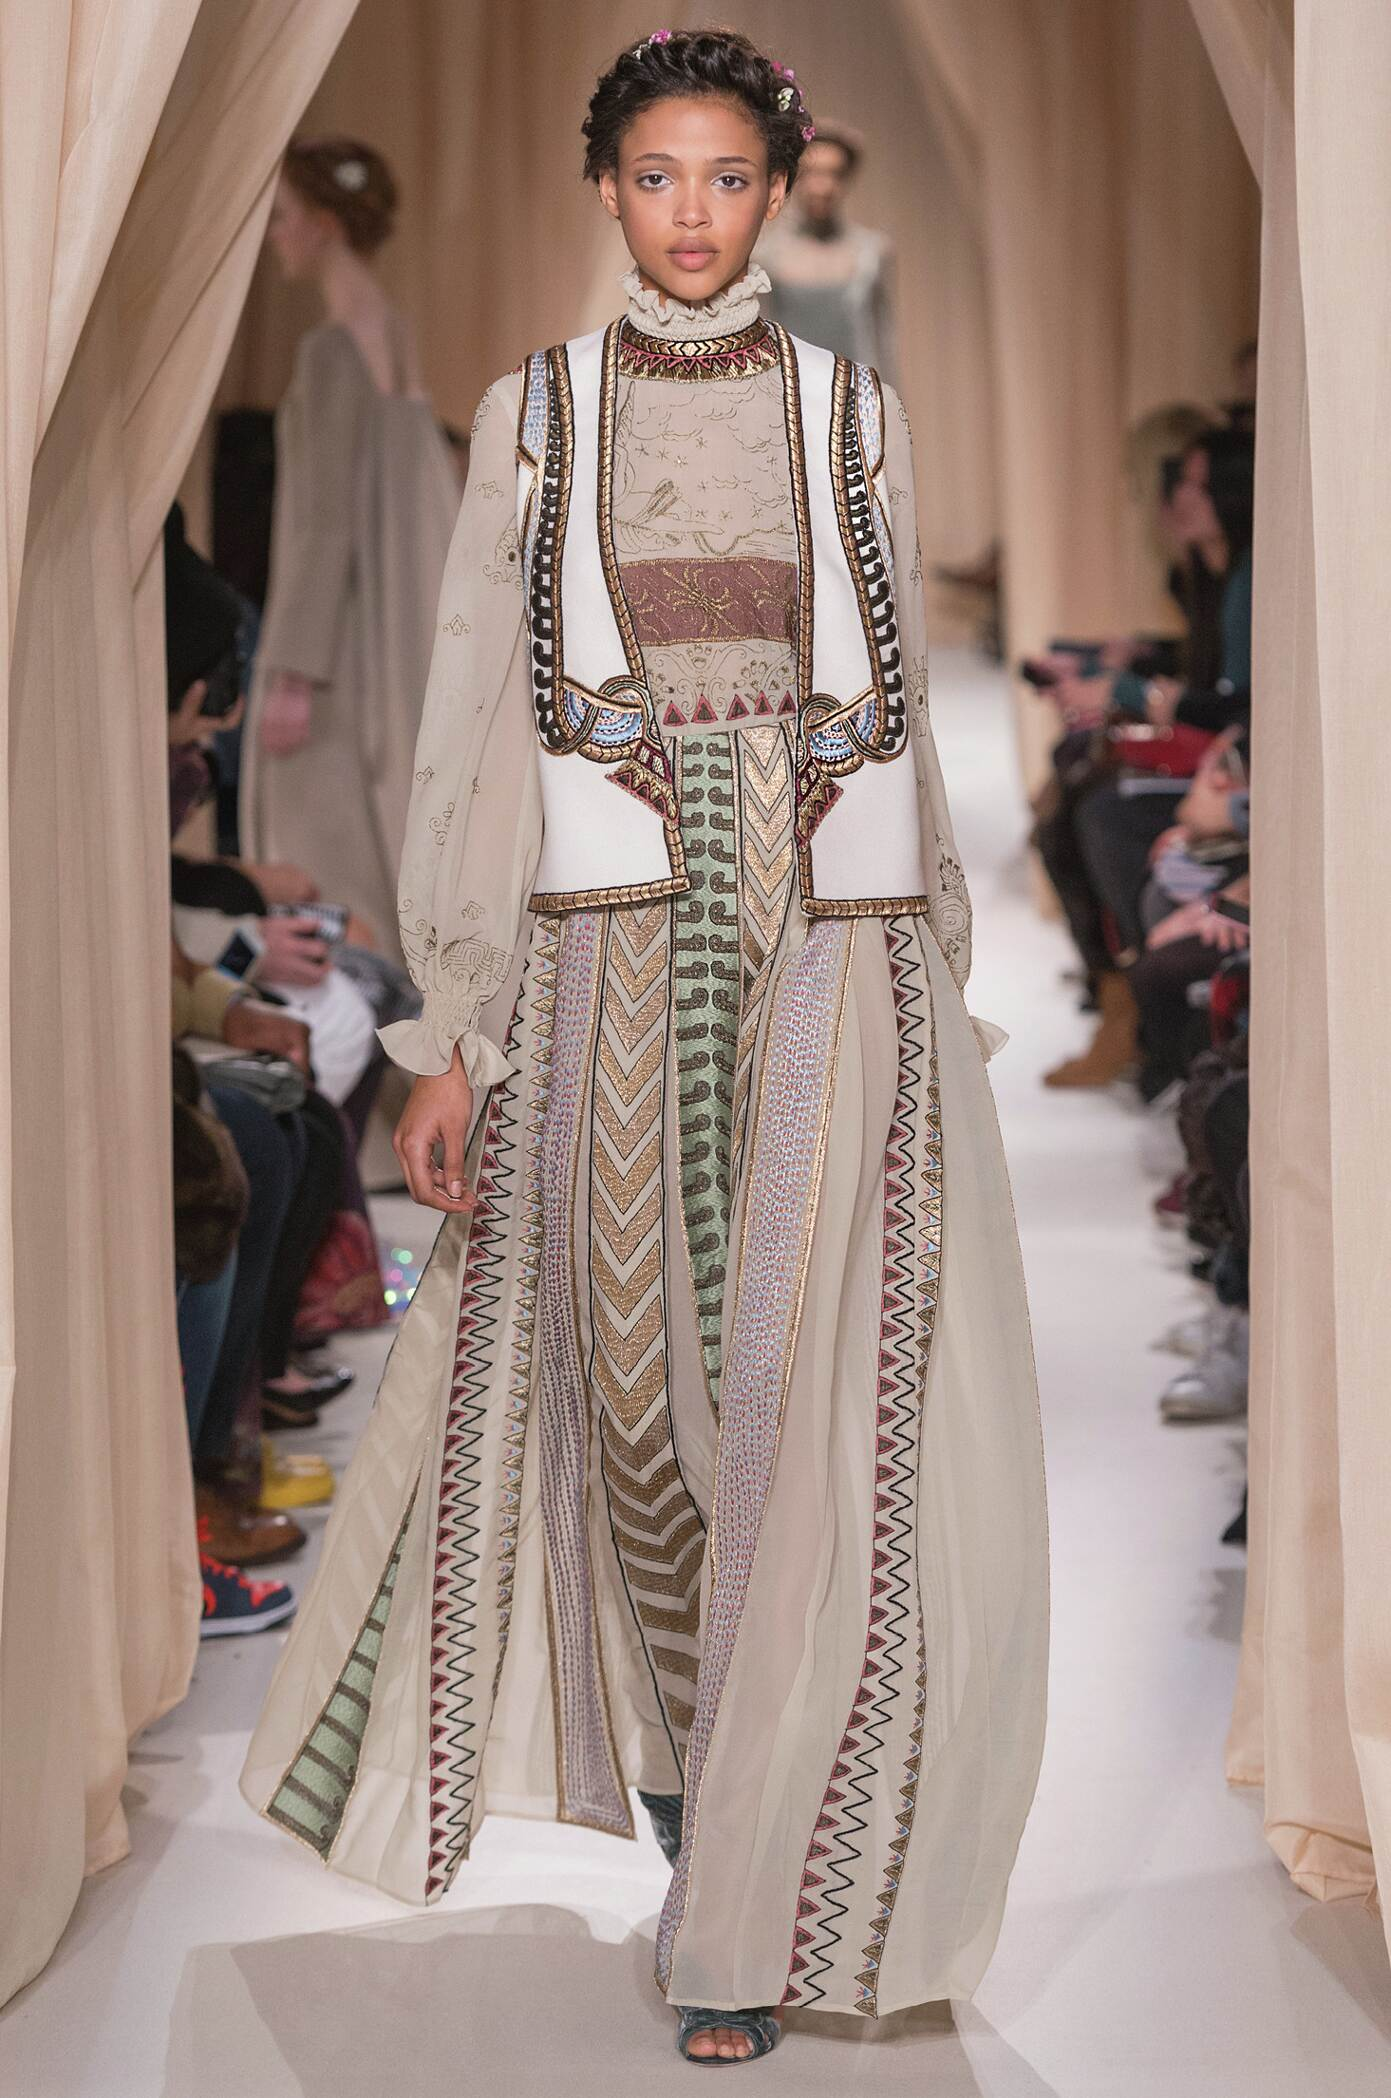 Fashion Woman Model Valentino Haute Couture Collection Catwalk